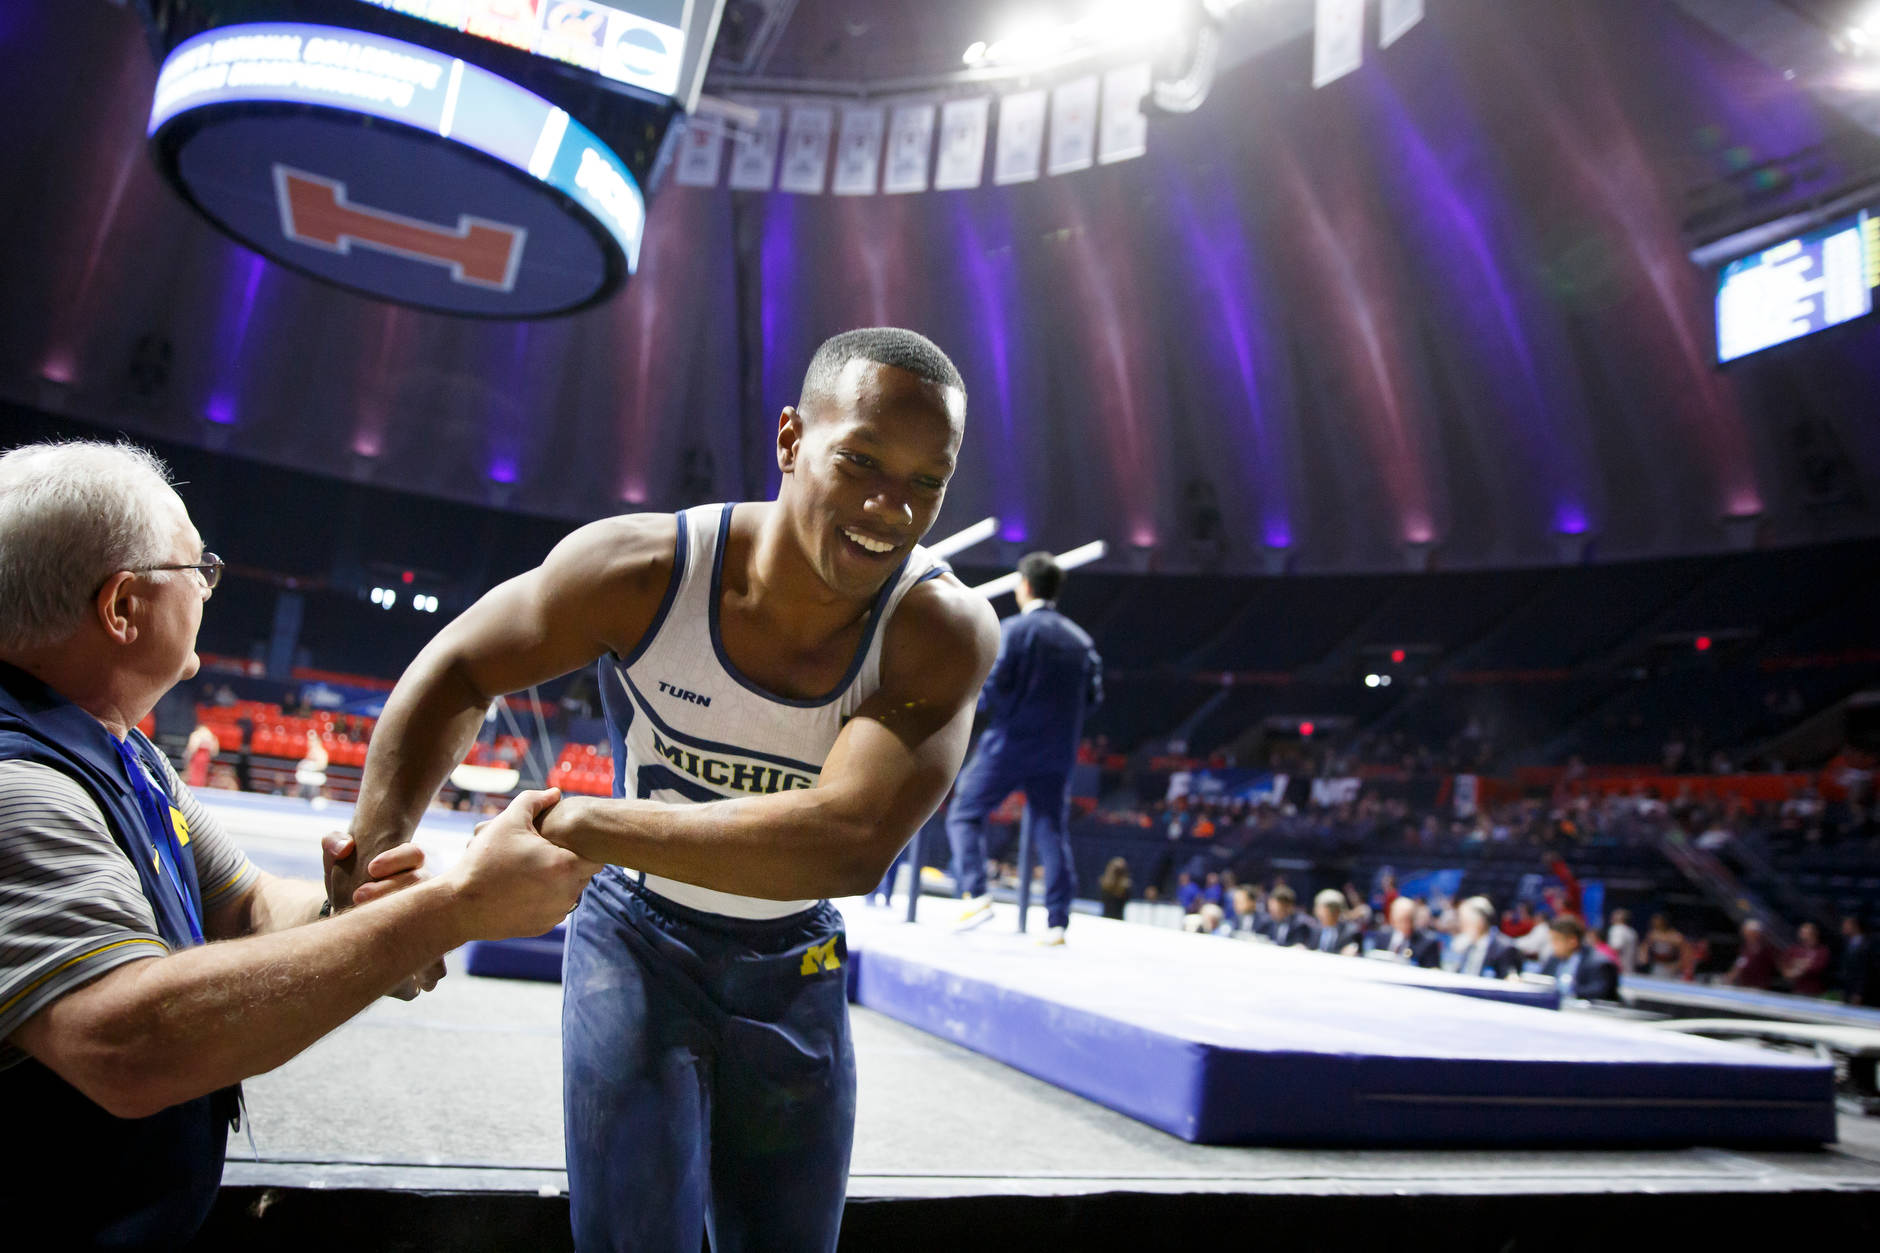 Michigan's Emyre Cole reacts after competing on parallel bars at the NCAA Men's Gymnastics Championships on Friday, April 19, 2019, at the State Farm Center in Champaign, Illinois. (Photo by James Brosher)